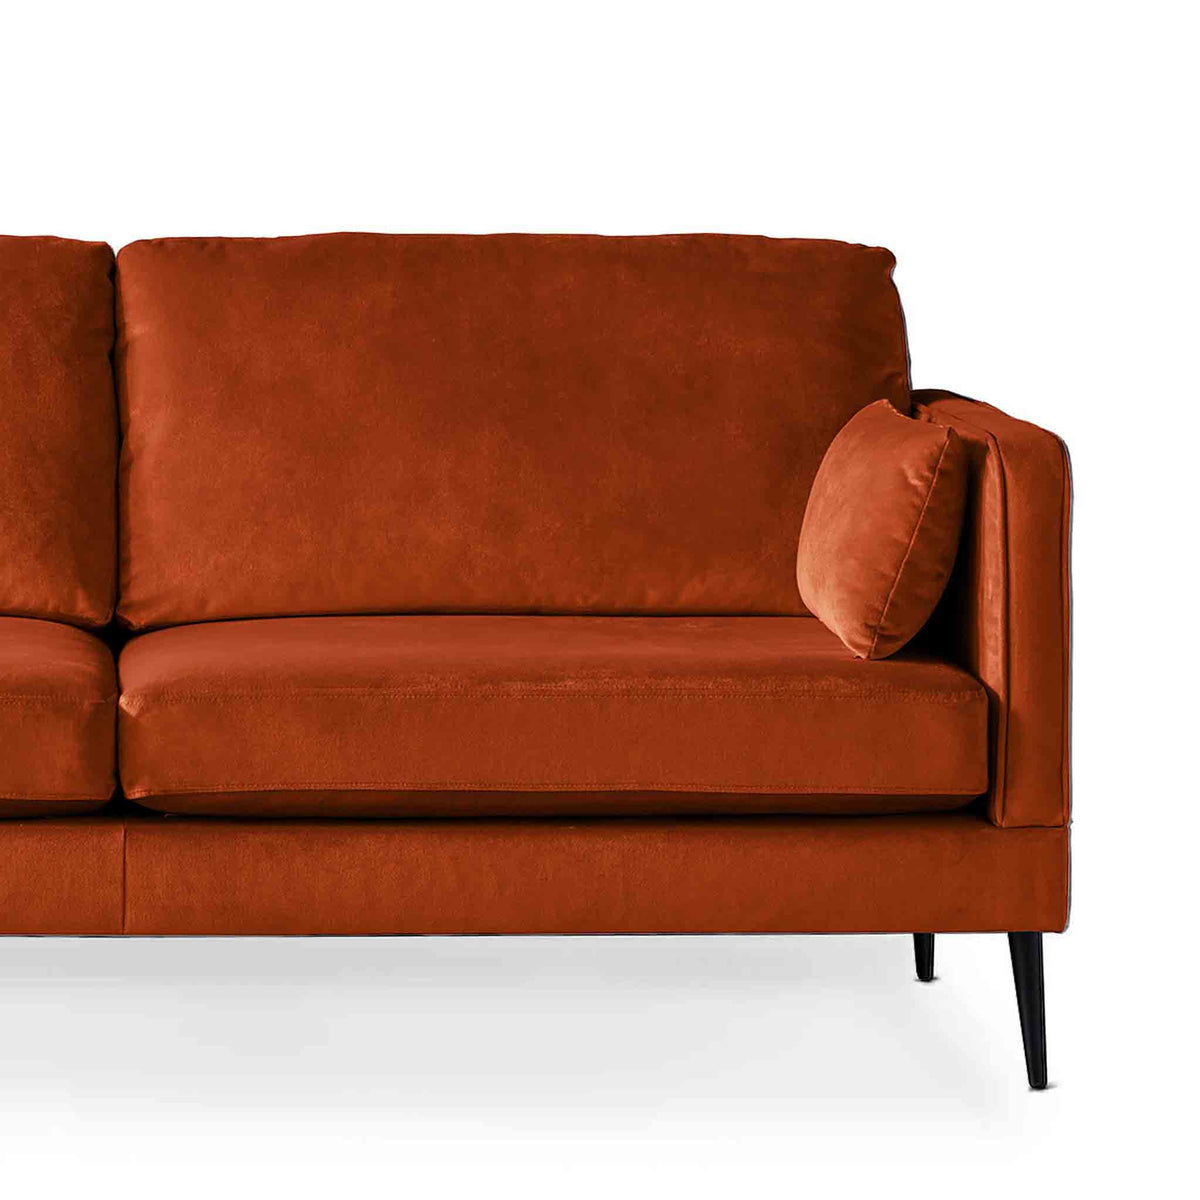 Anton Apricot 3 Seater Sofa - Close up of sofa